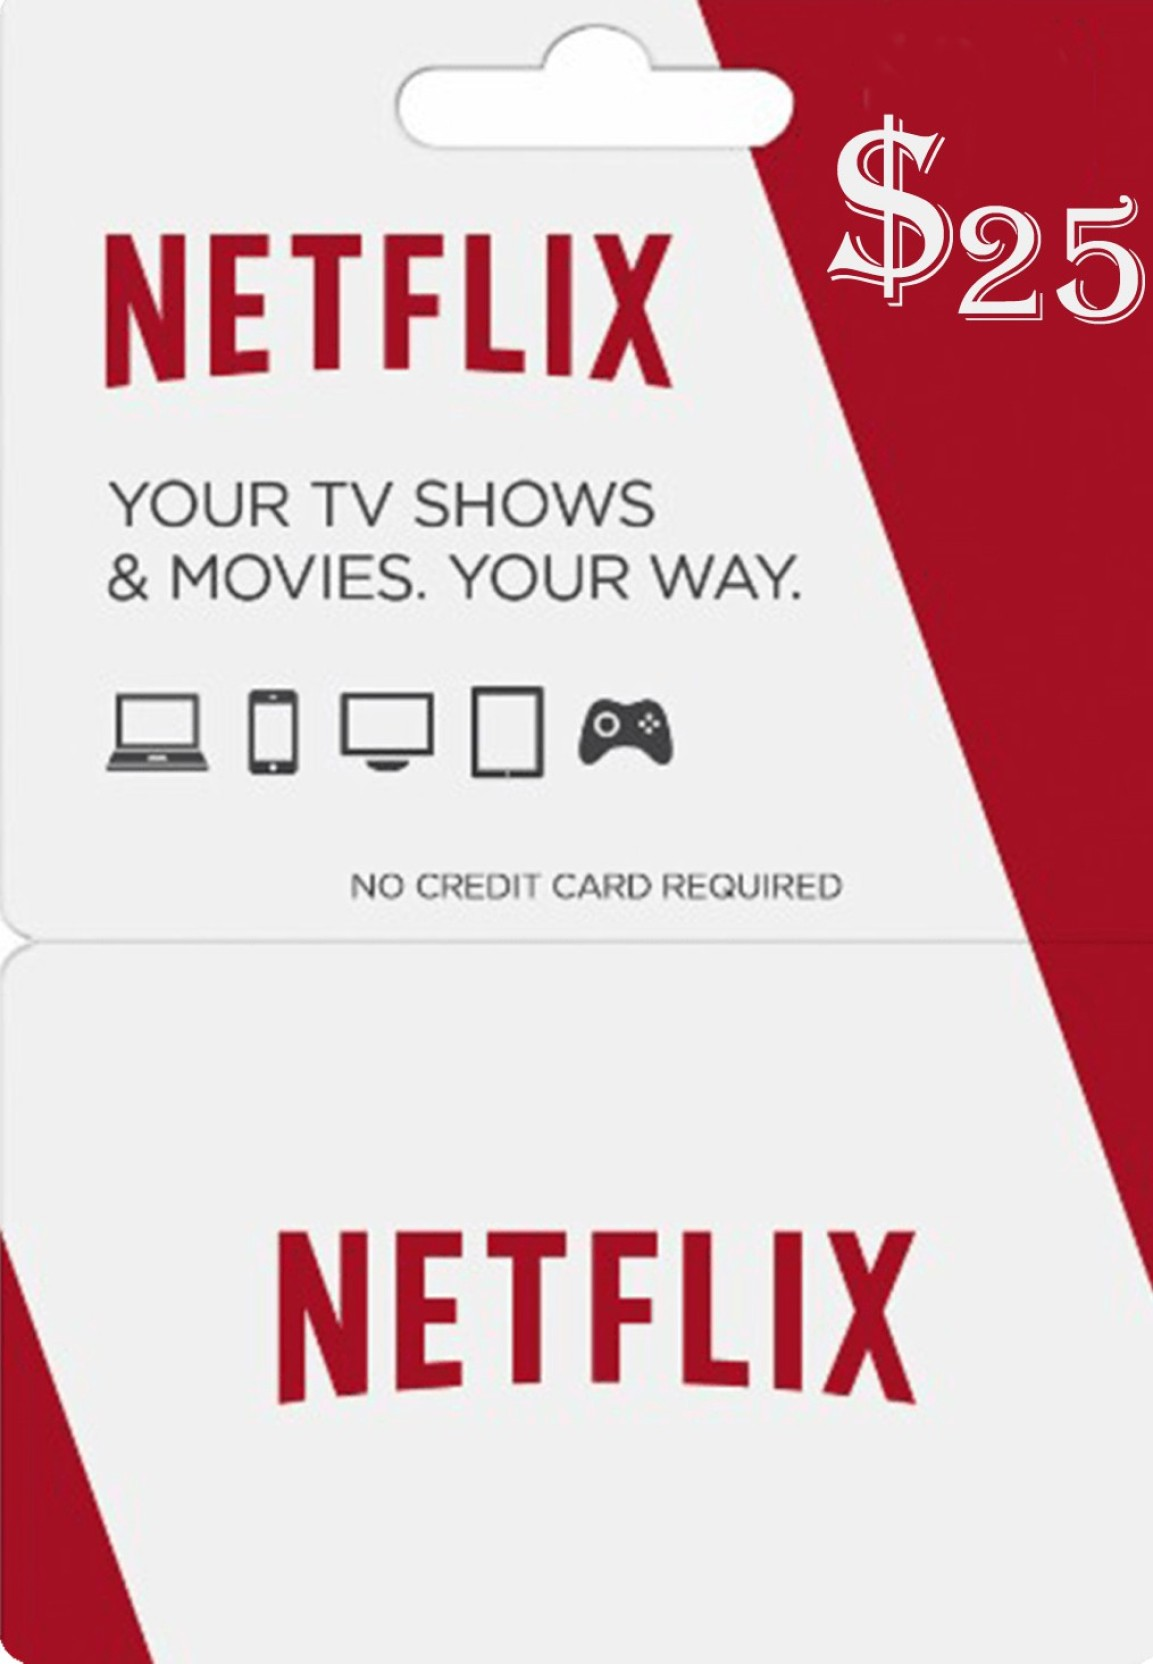 Steam Wallet Usd 25 Netflix Gift Card North America For Pc Price In India Buy Add To Cart